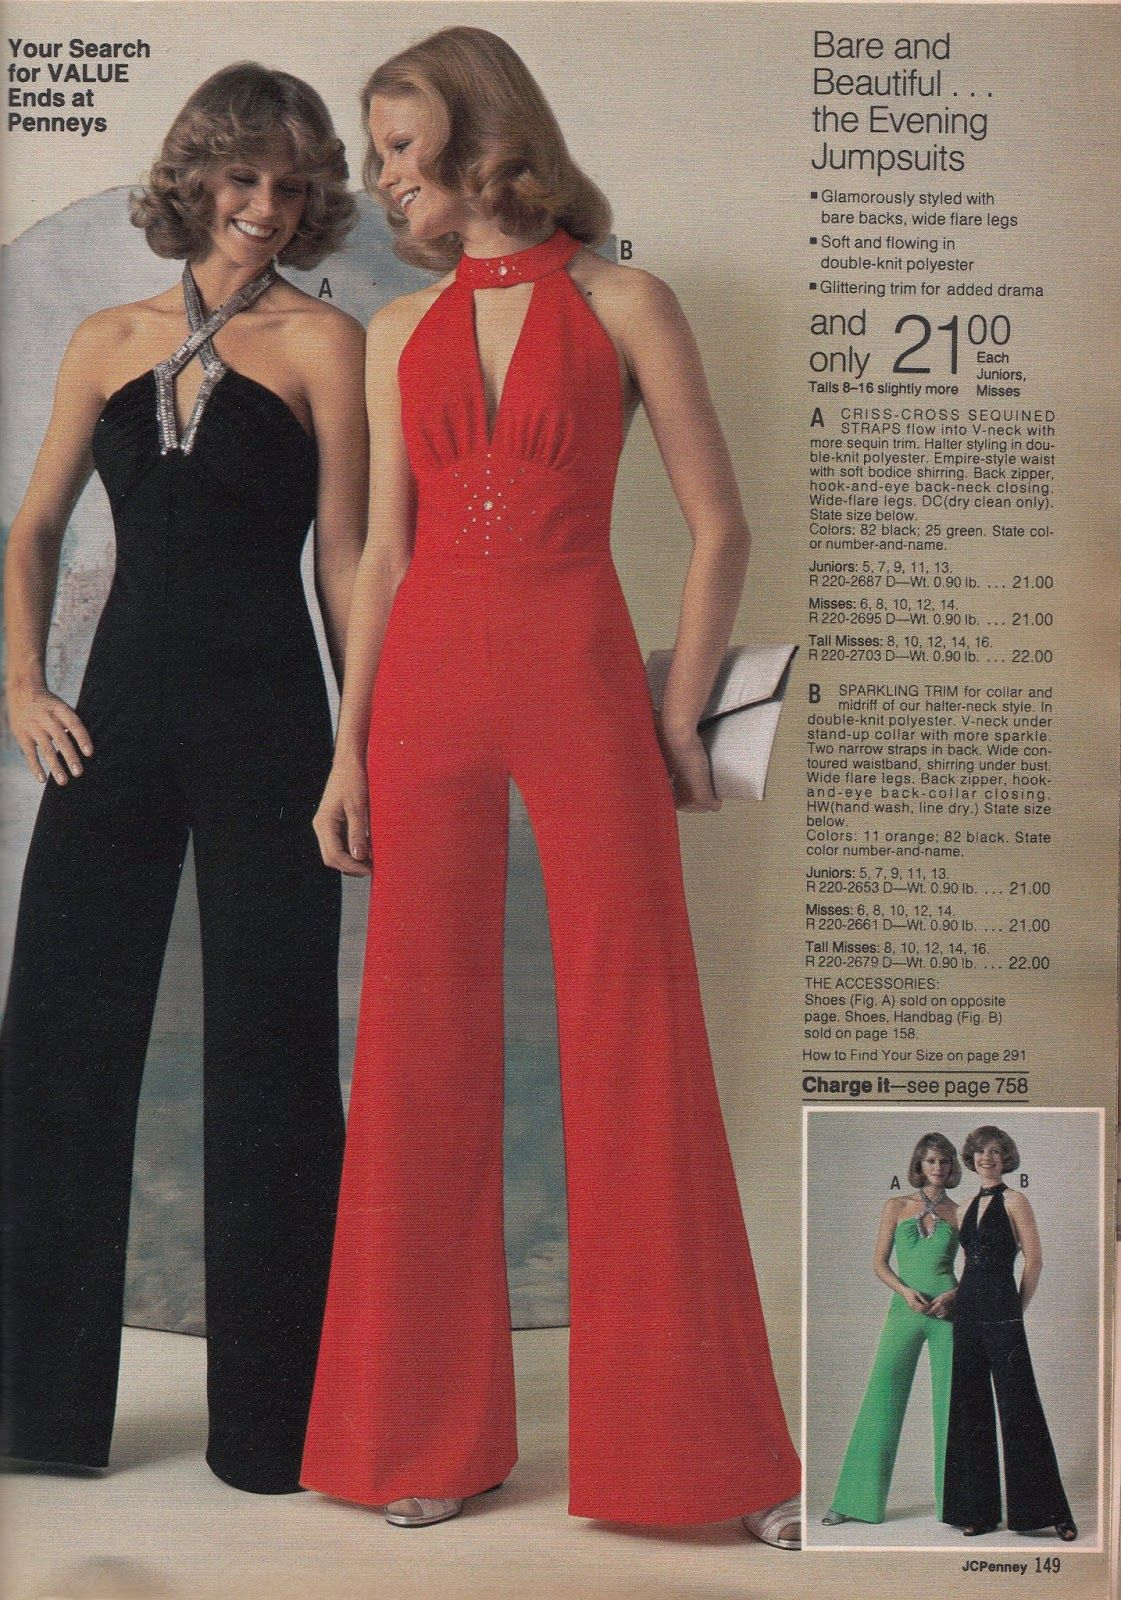 5ae1ba83e9 Jumpsuit - It is a garment that includes pants and a top all in one  connected outfit. It is a unisex garment. It became very popular during the  70s.